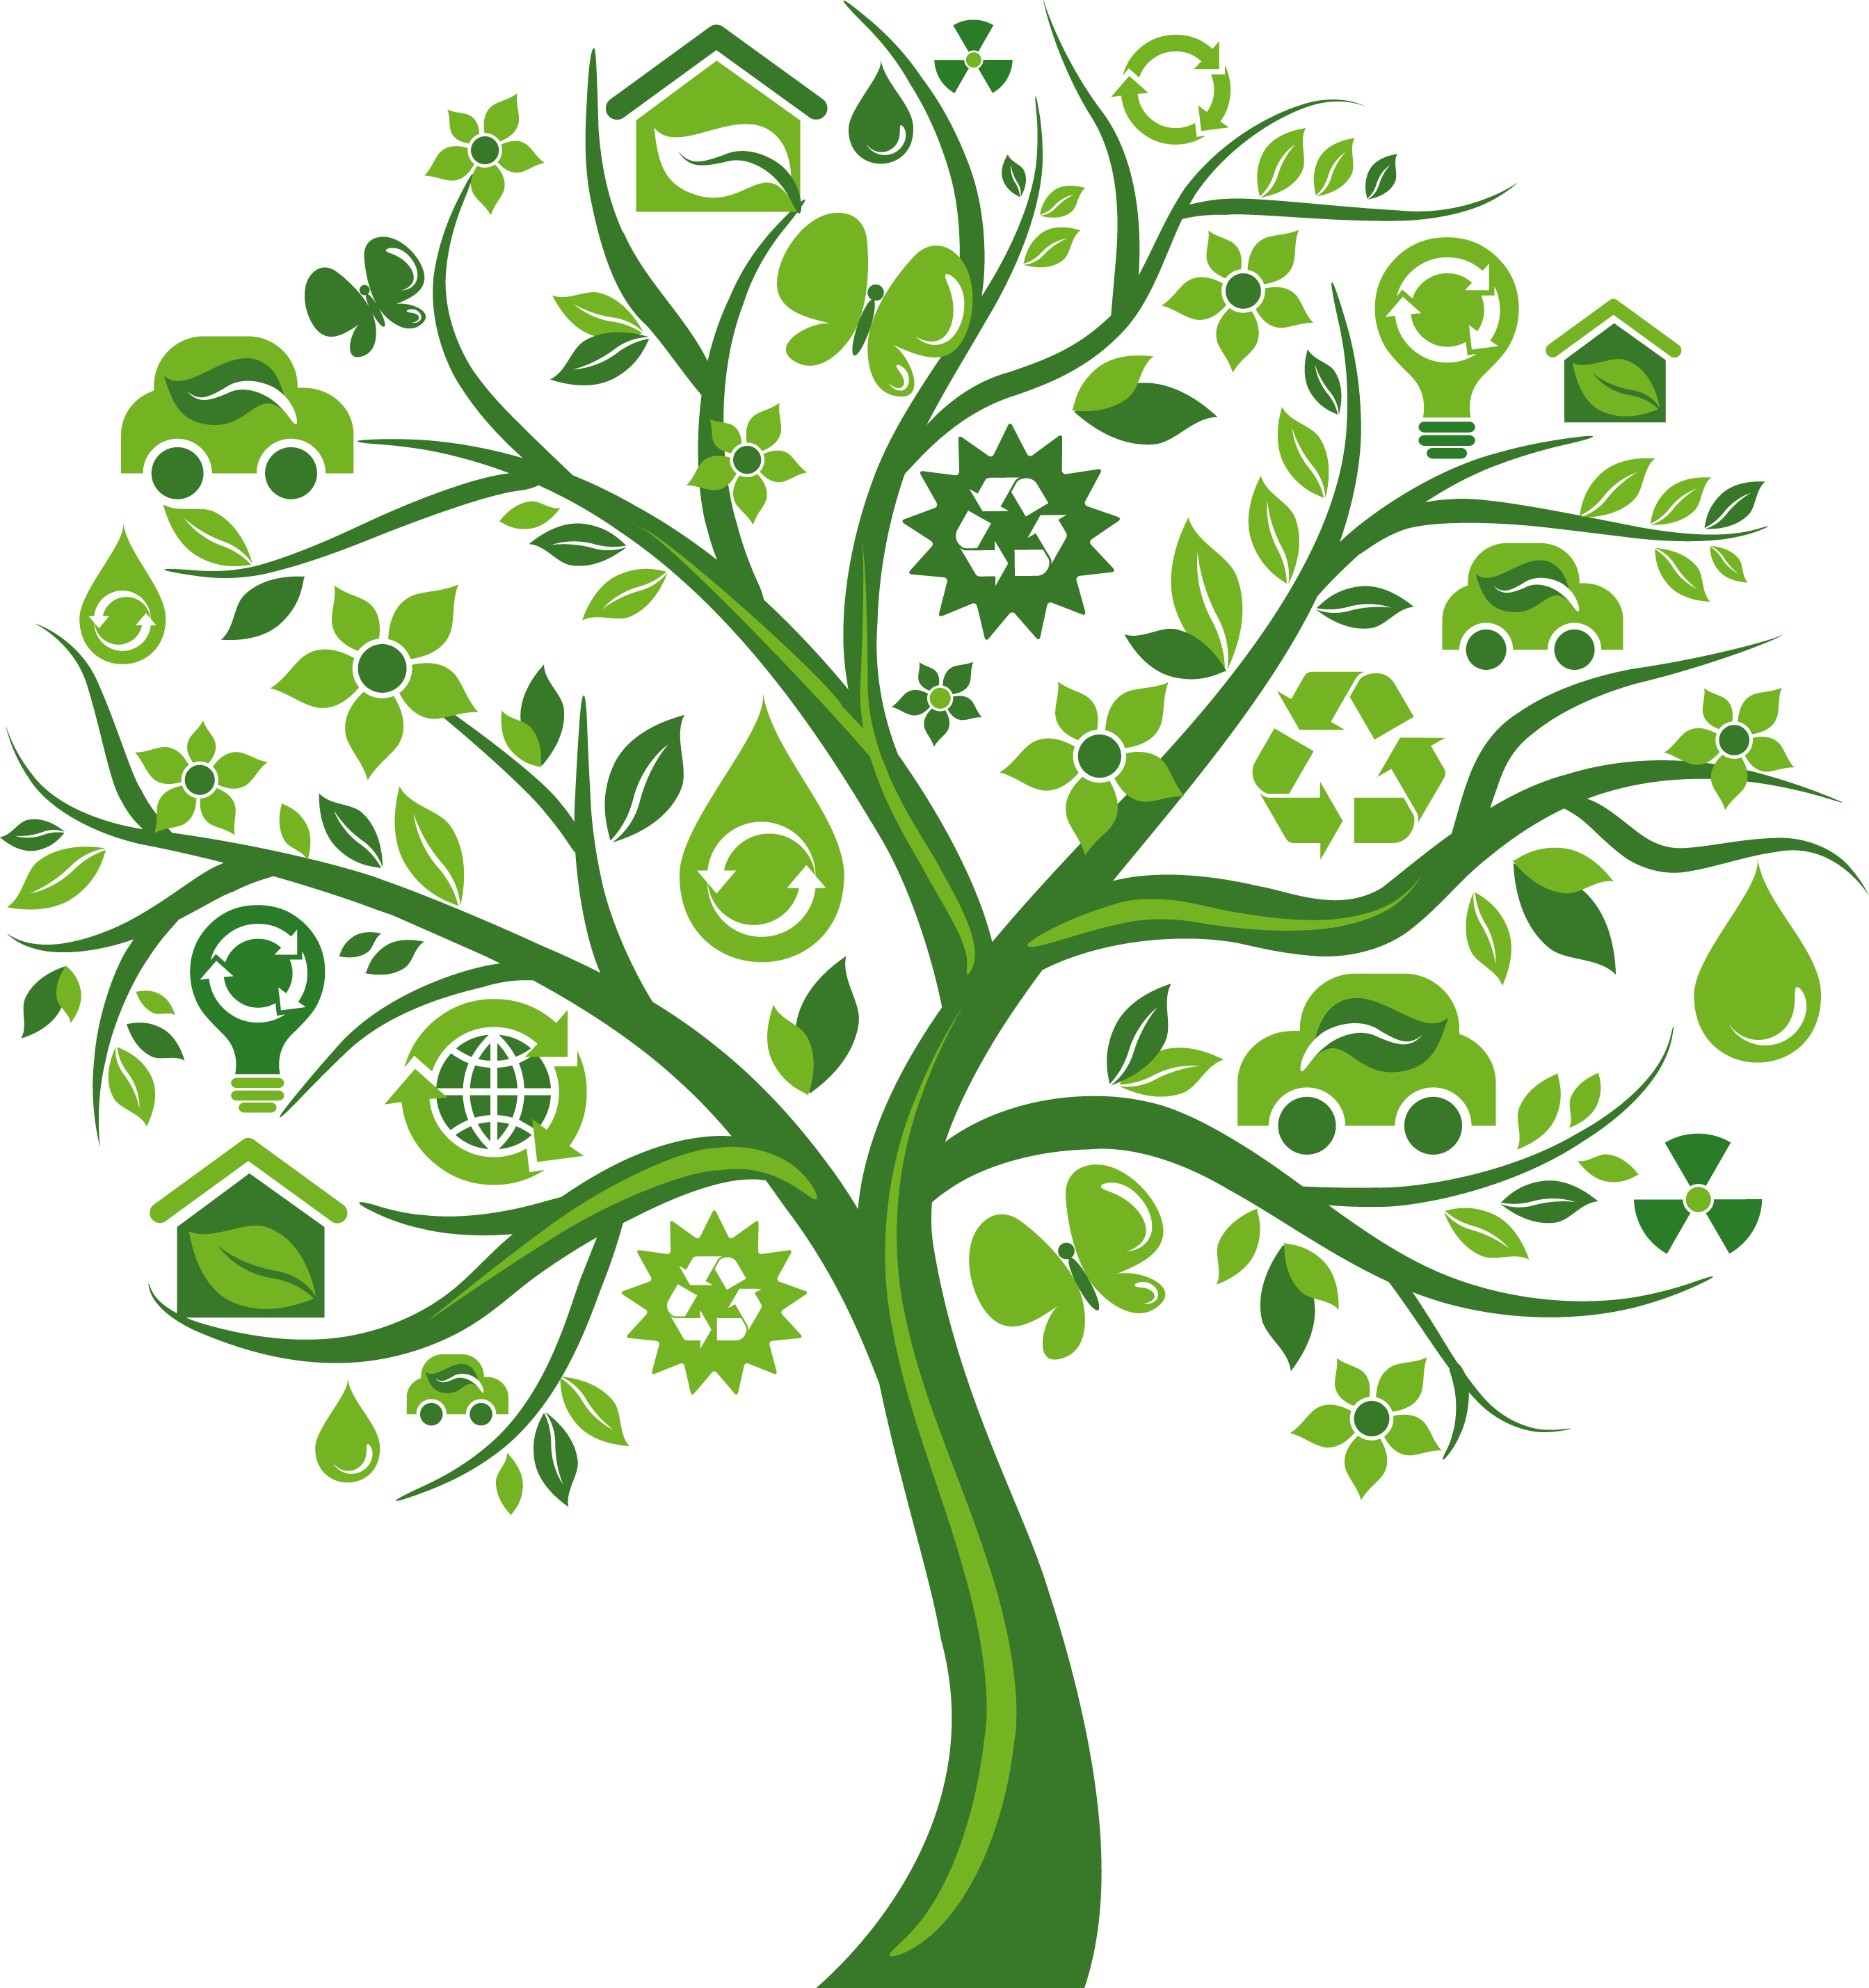 Environment clipart sustainable. Sustainability equals growth and